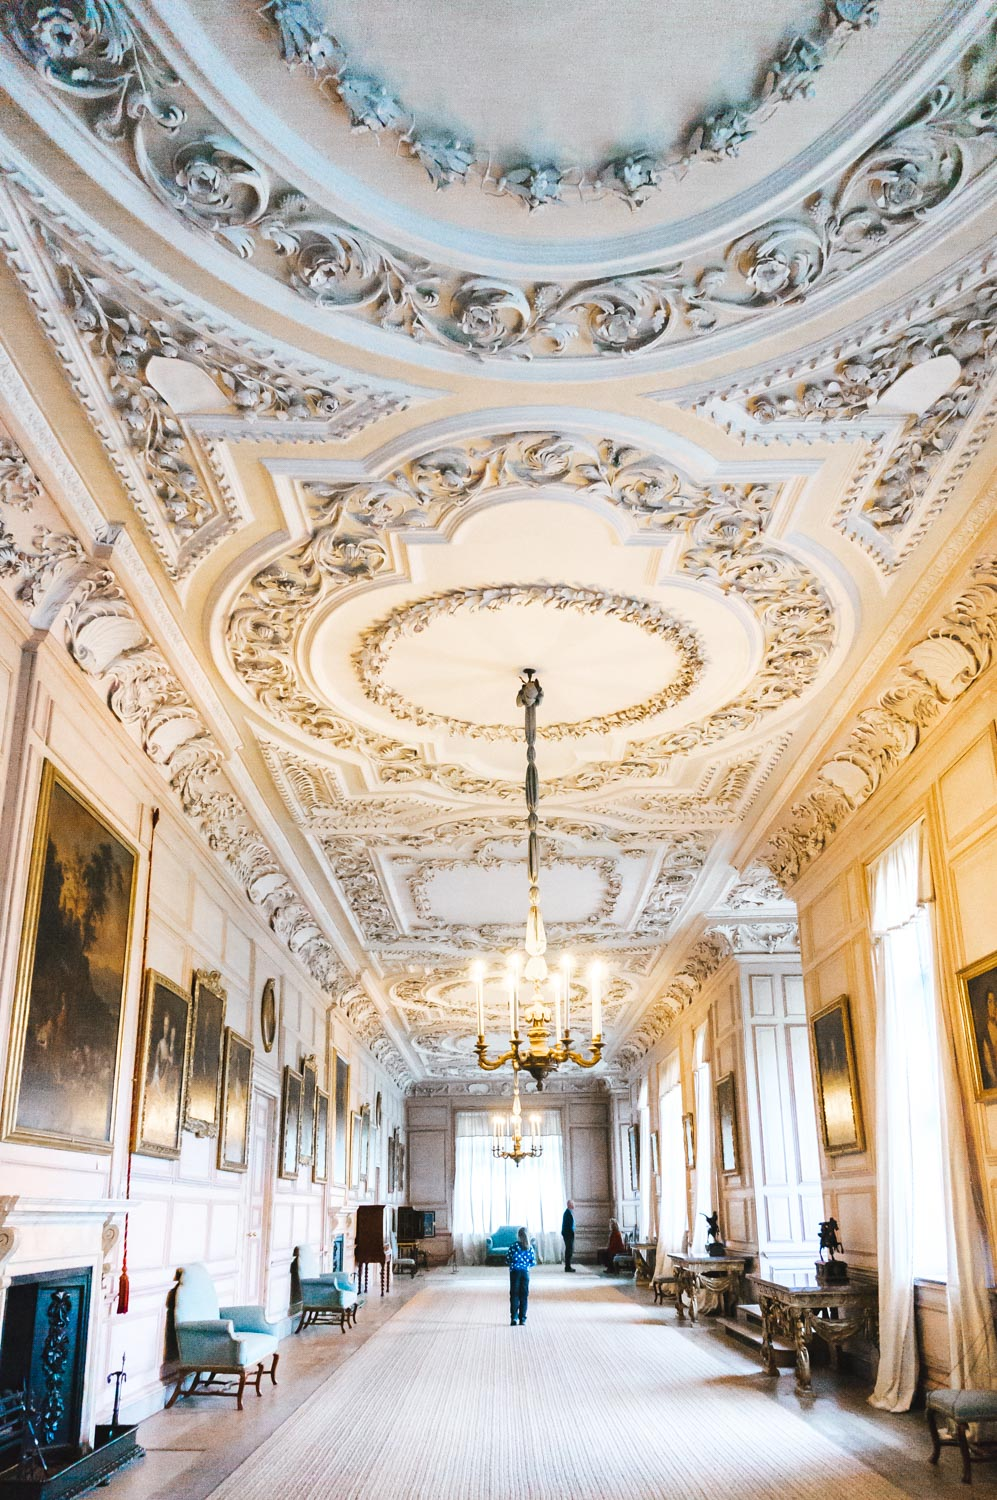 Inside Sudbury Hall